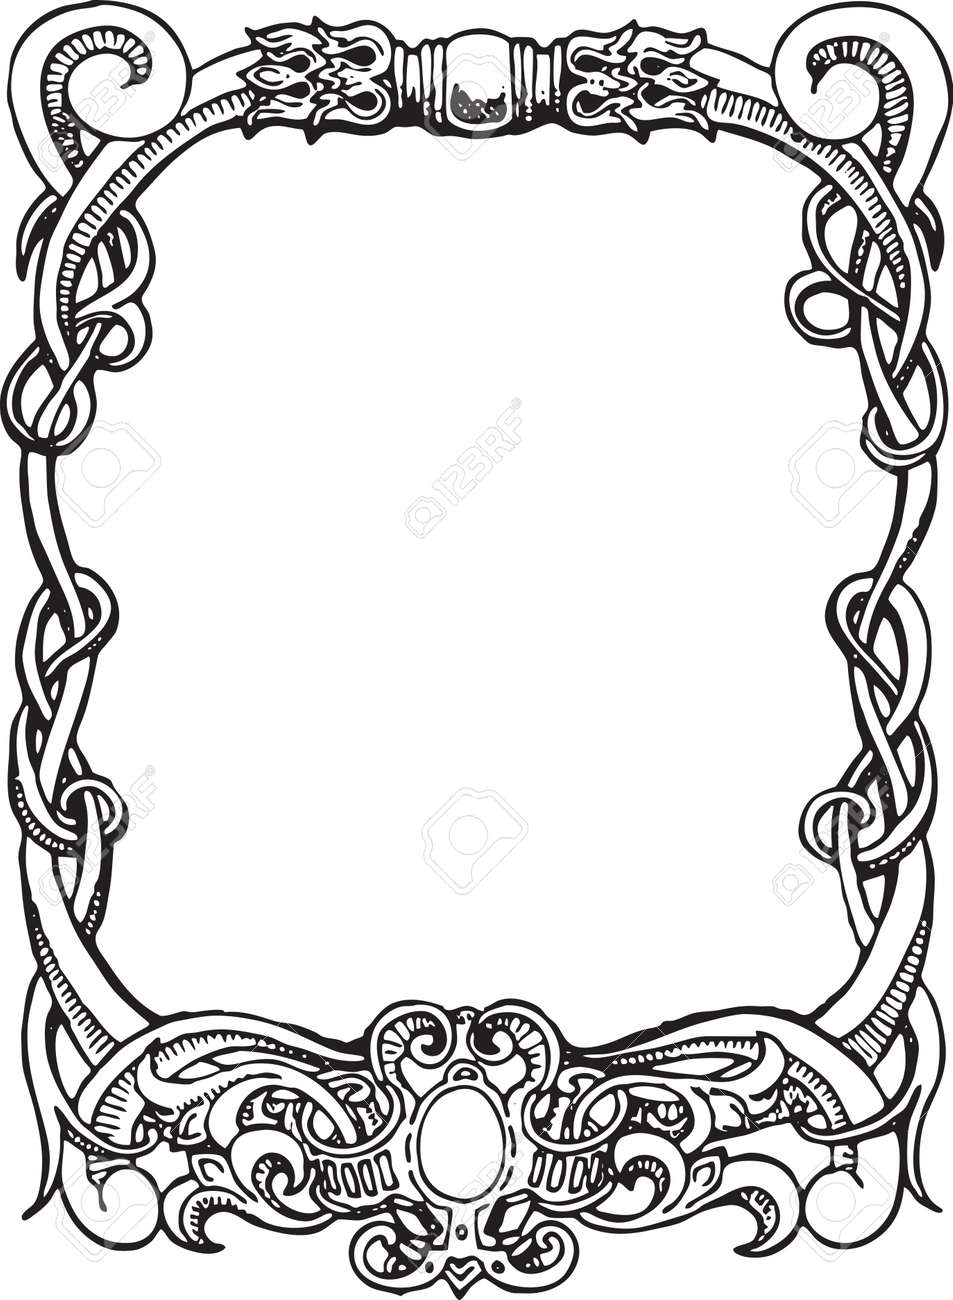 beautiful decorative floral frame art nouveau design element rh 123rf com art nouveau vector frame art nouveau victor horta